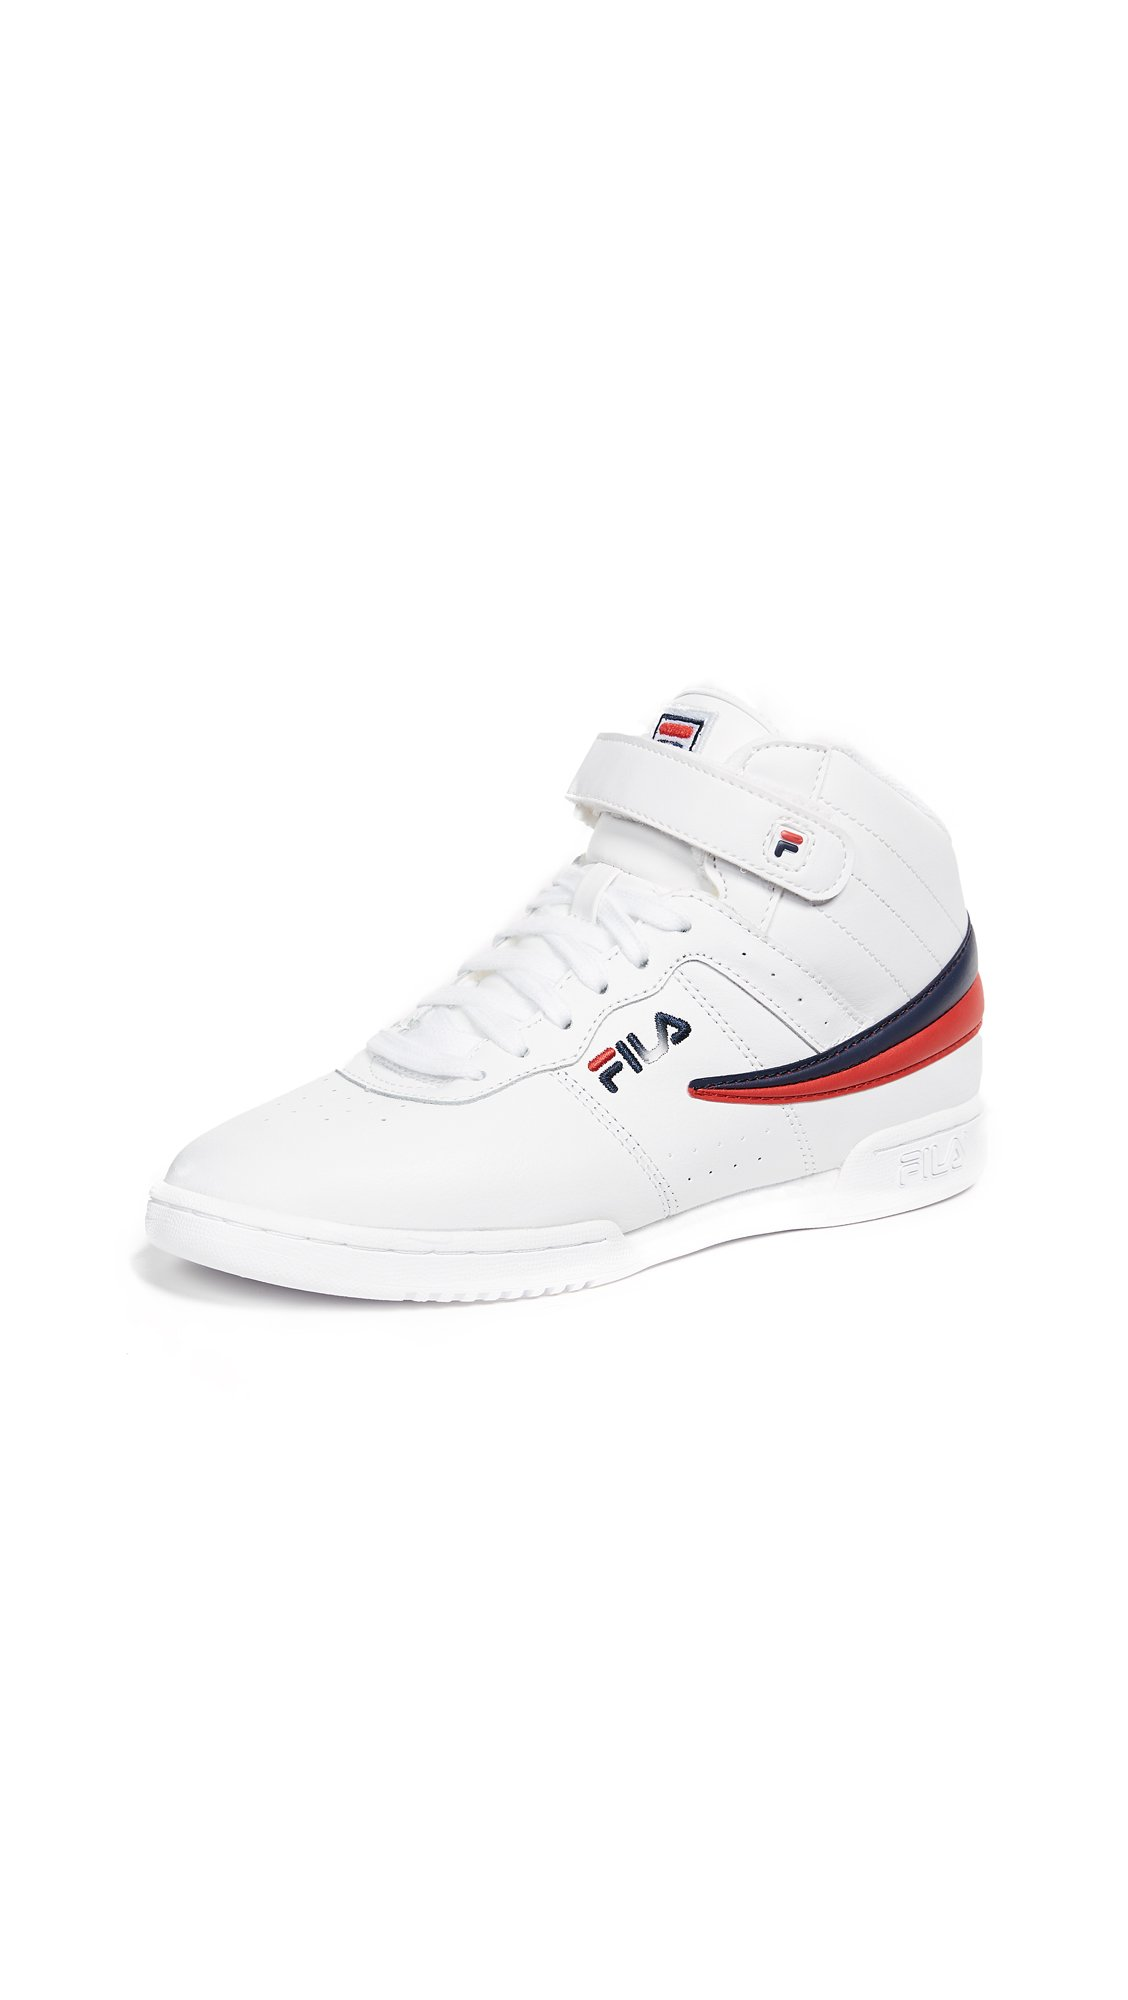 Fila Women's F-13 Sneakers, White Navy Red, 6.5 B(M) US